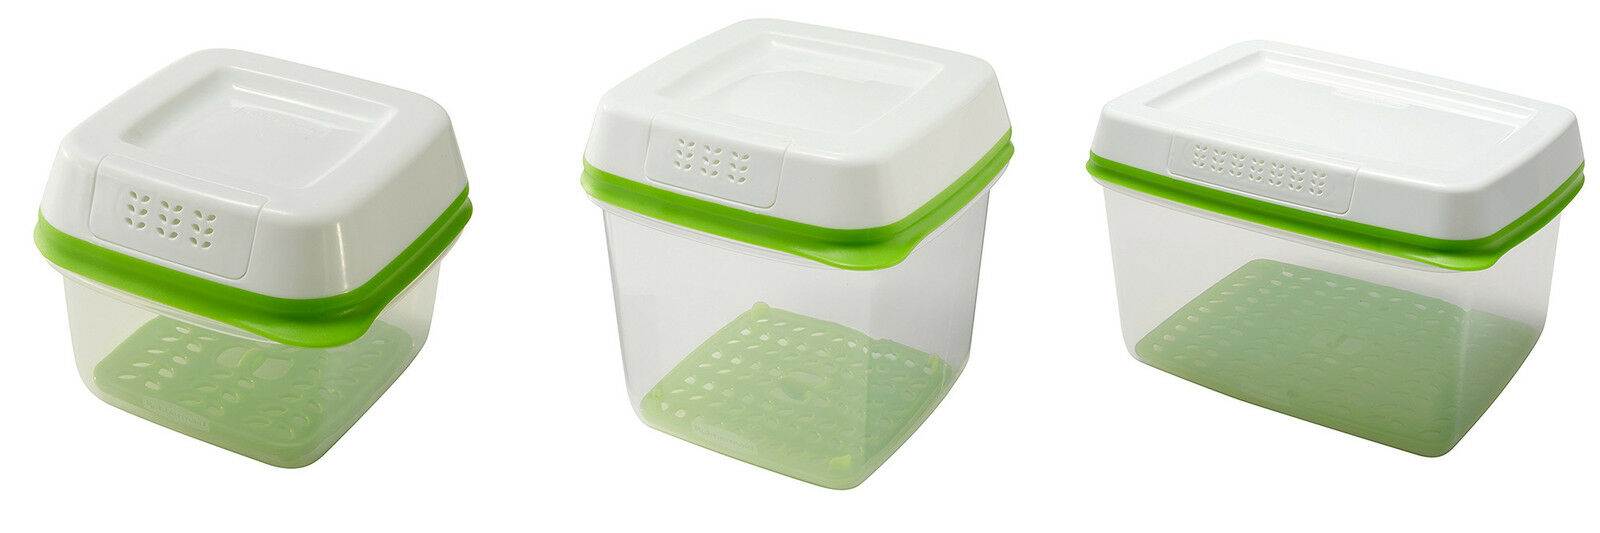 Rubbermaid FreshWorks Produce Saver Food Storage Containers, Green, 3 Sizes 1